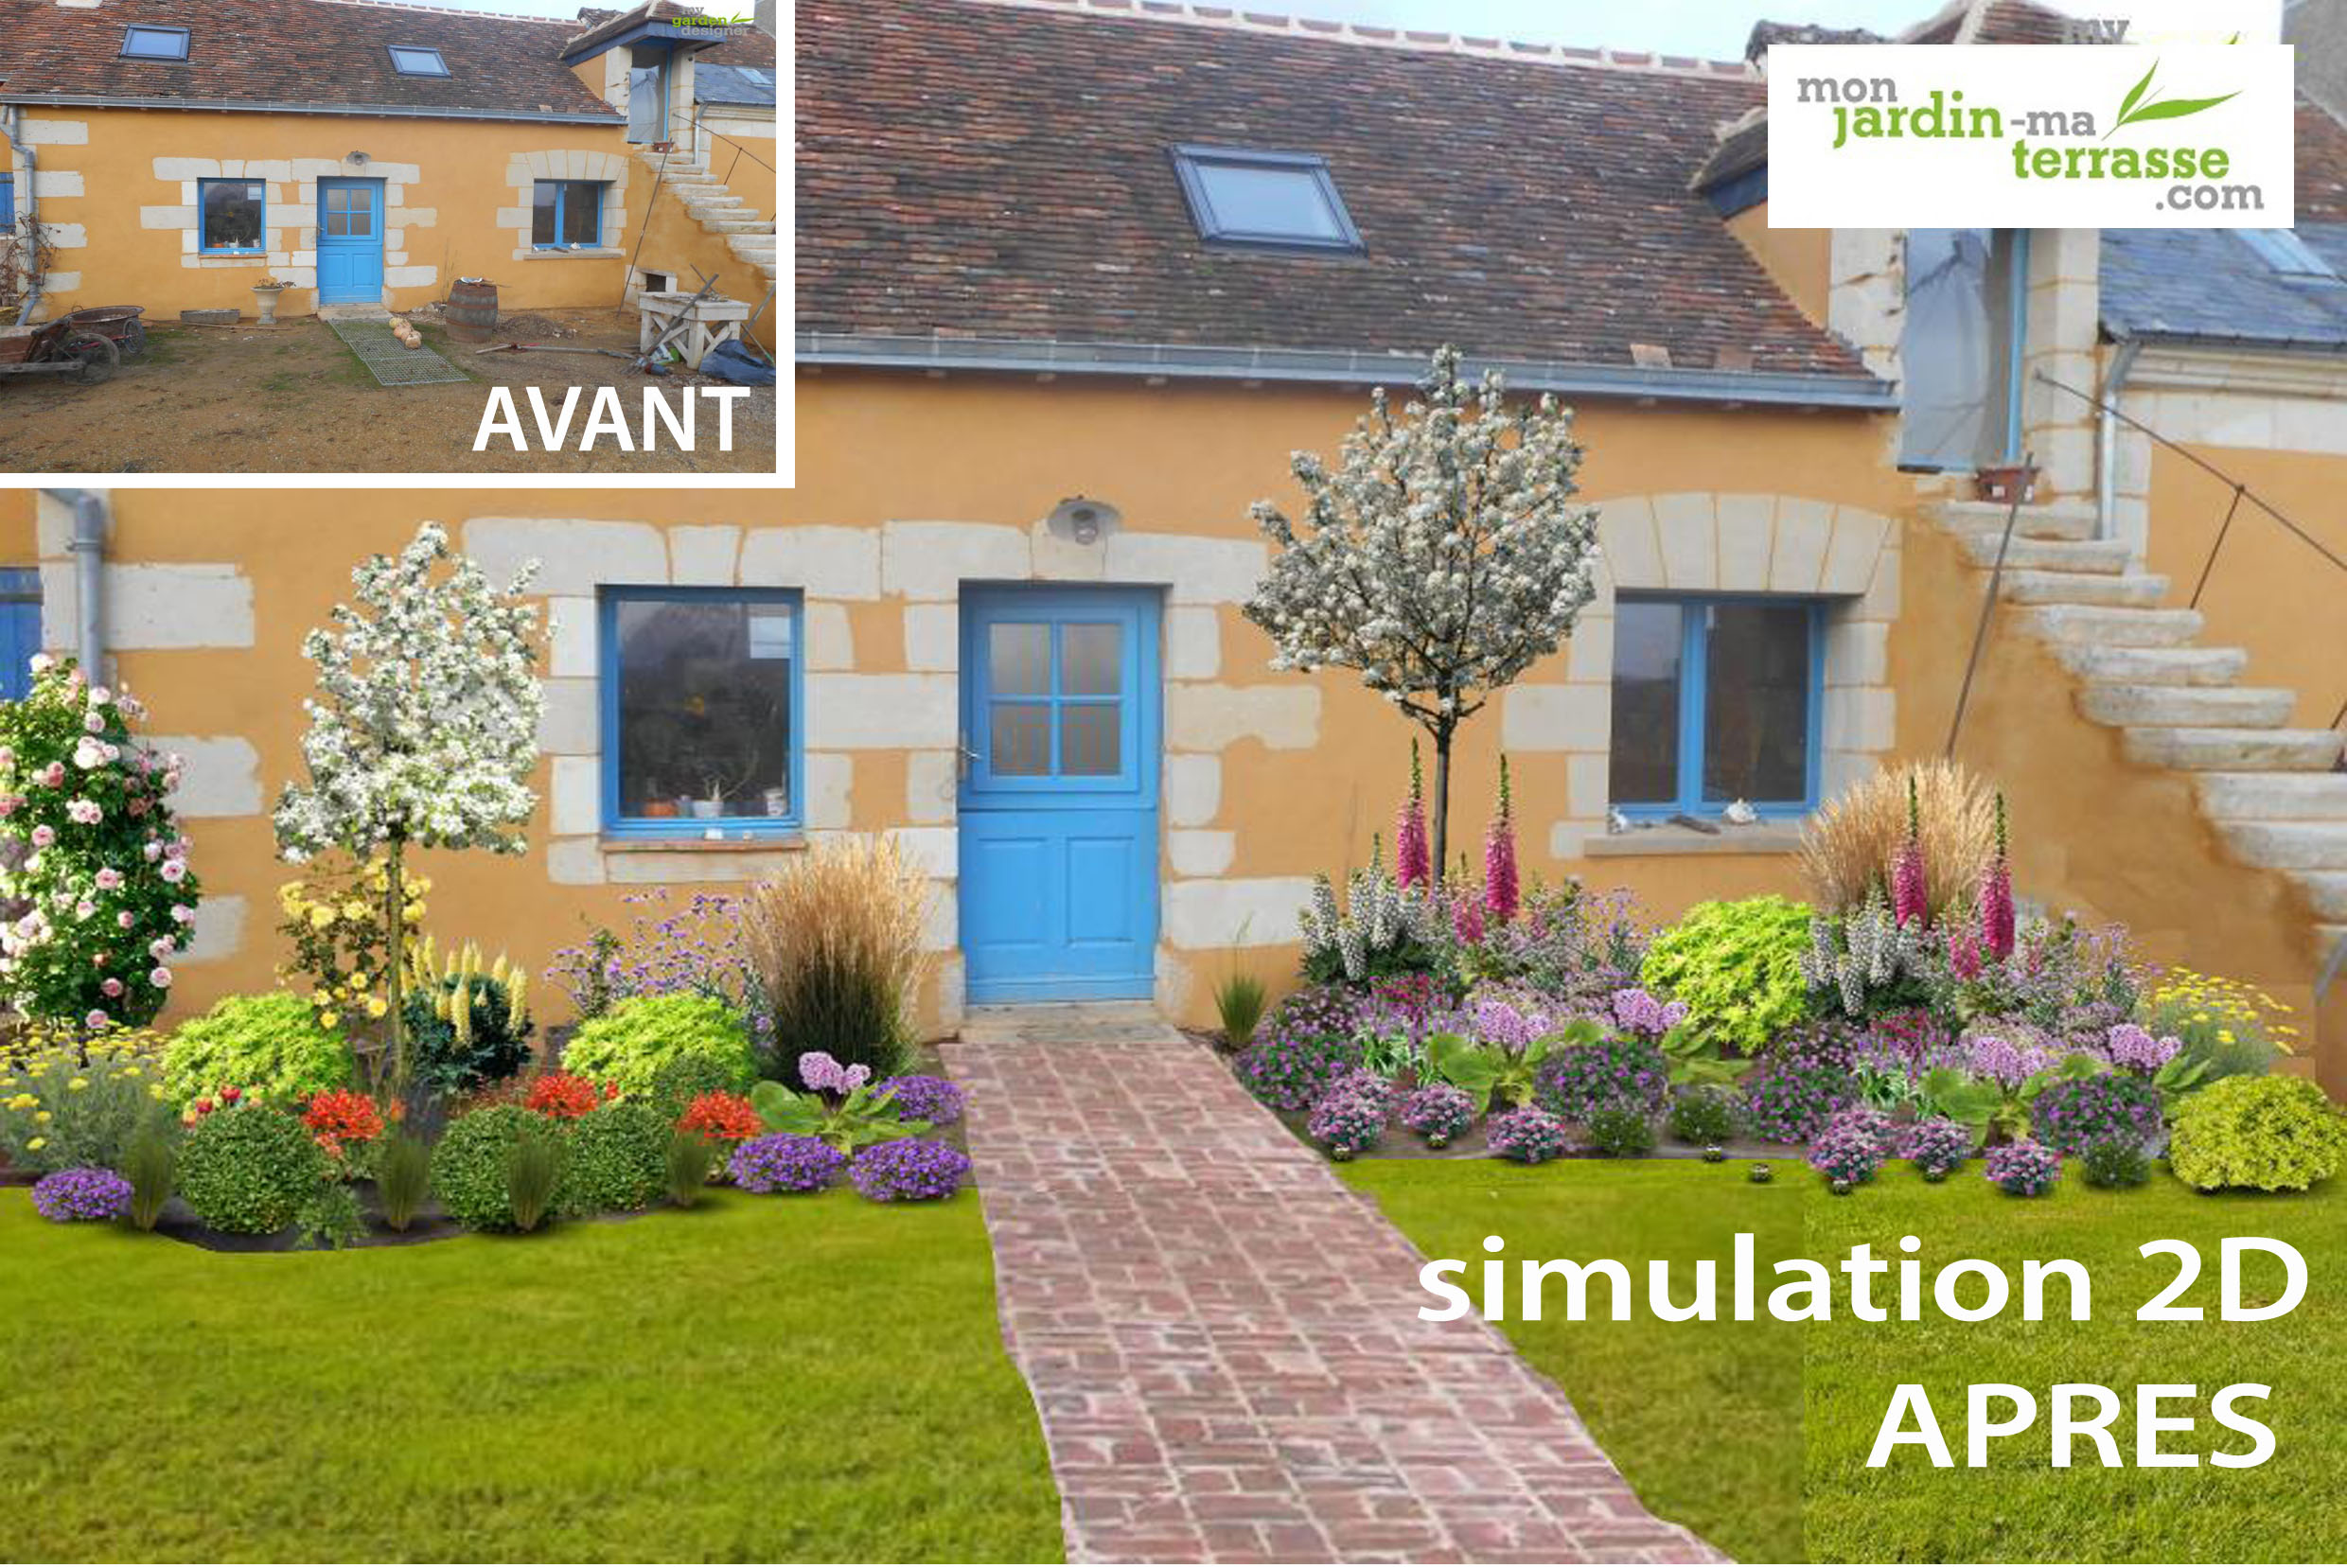 Am nager un jardin style cottage anglais monjardin for Amenagement jardin anglais